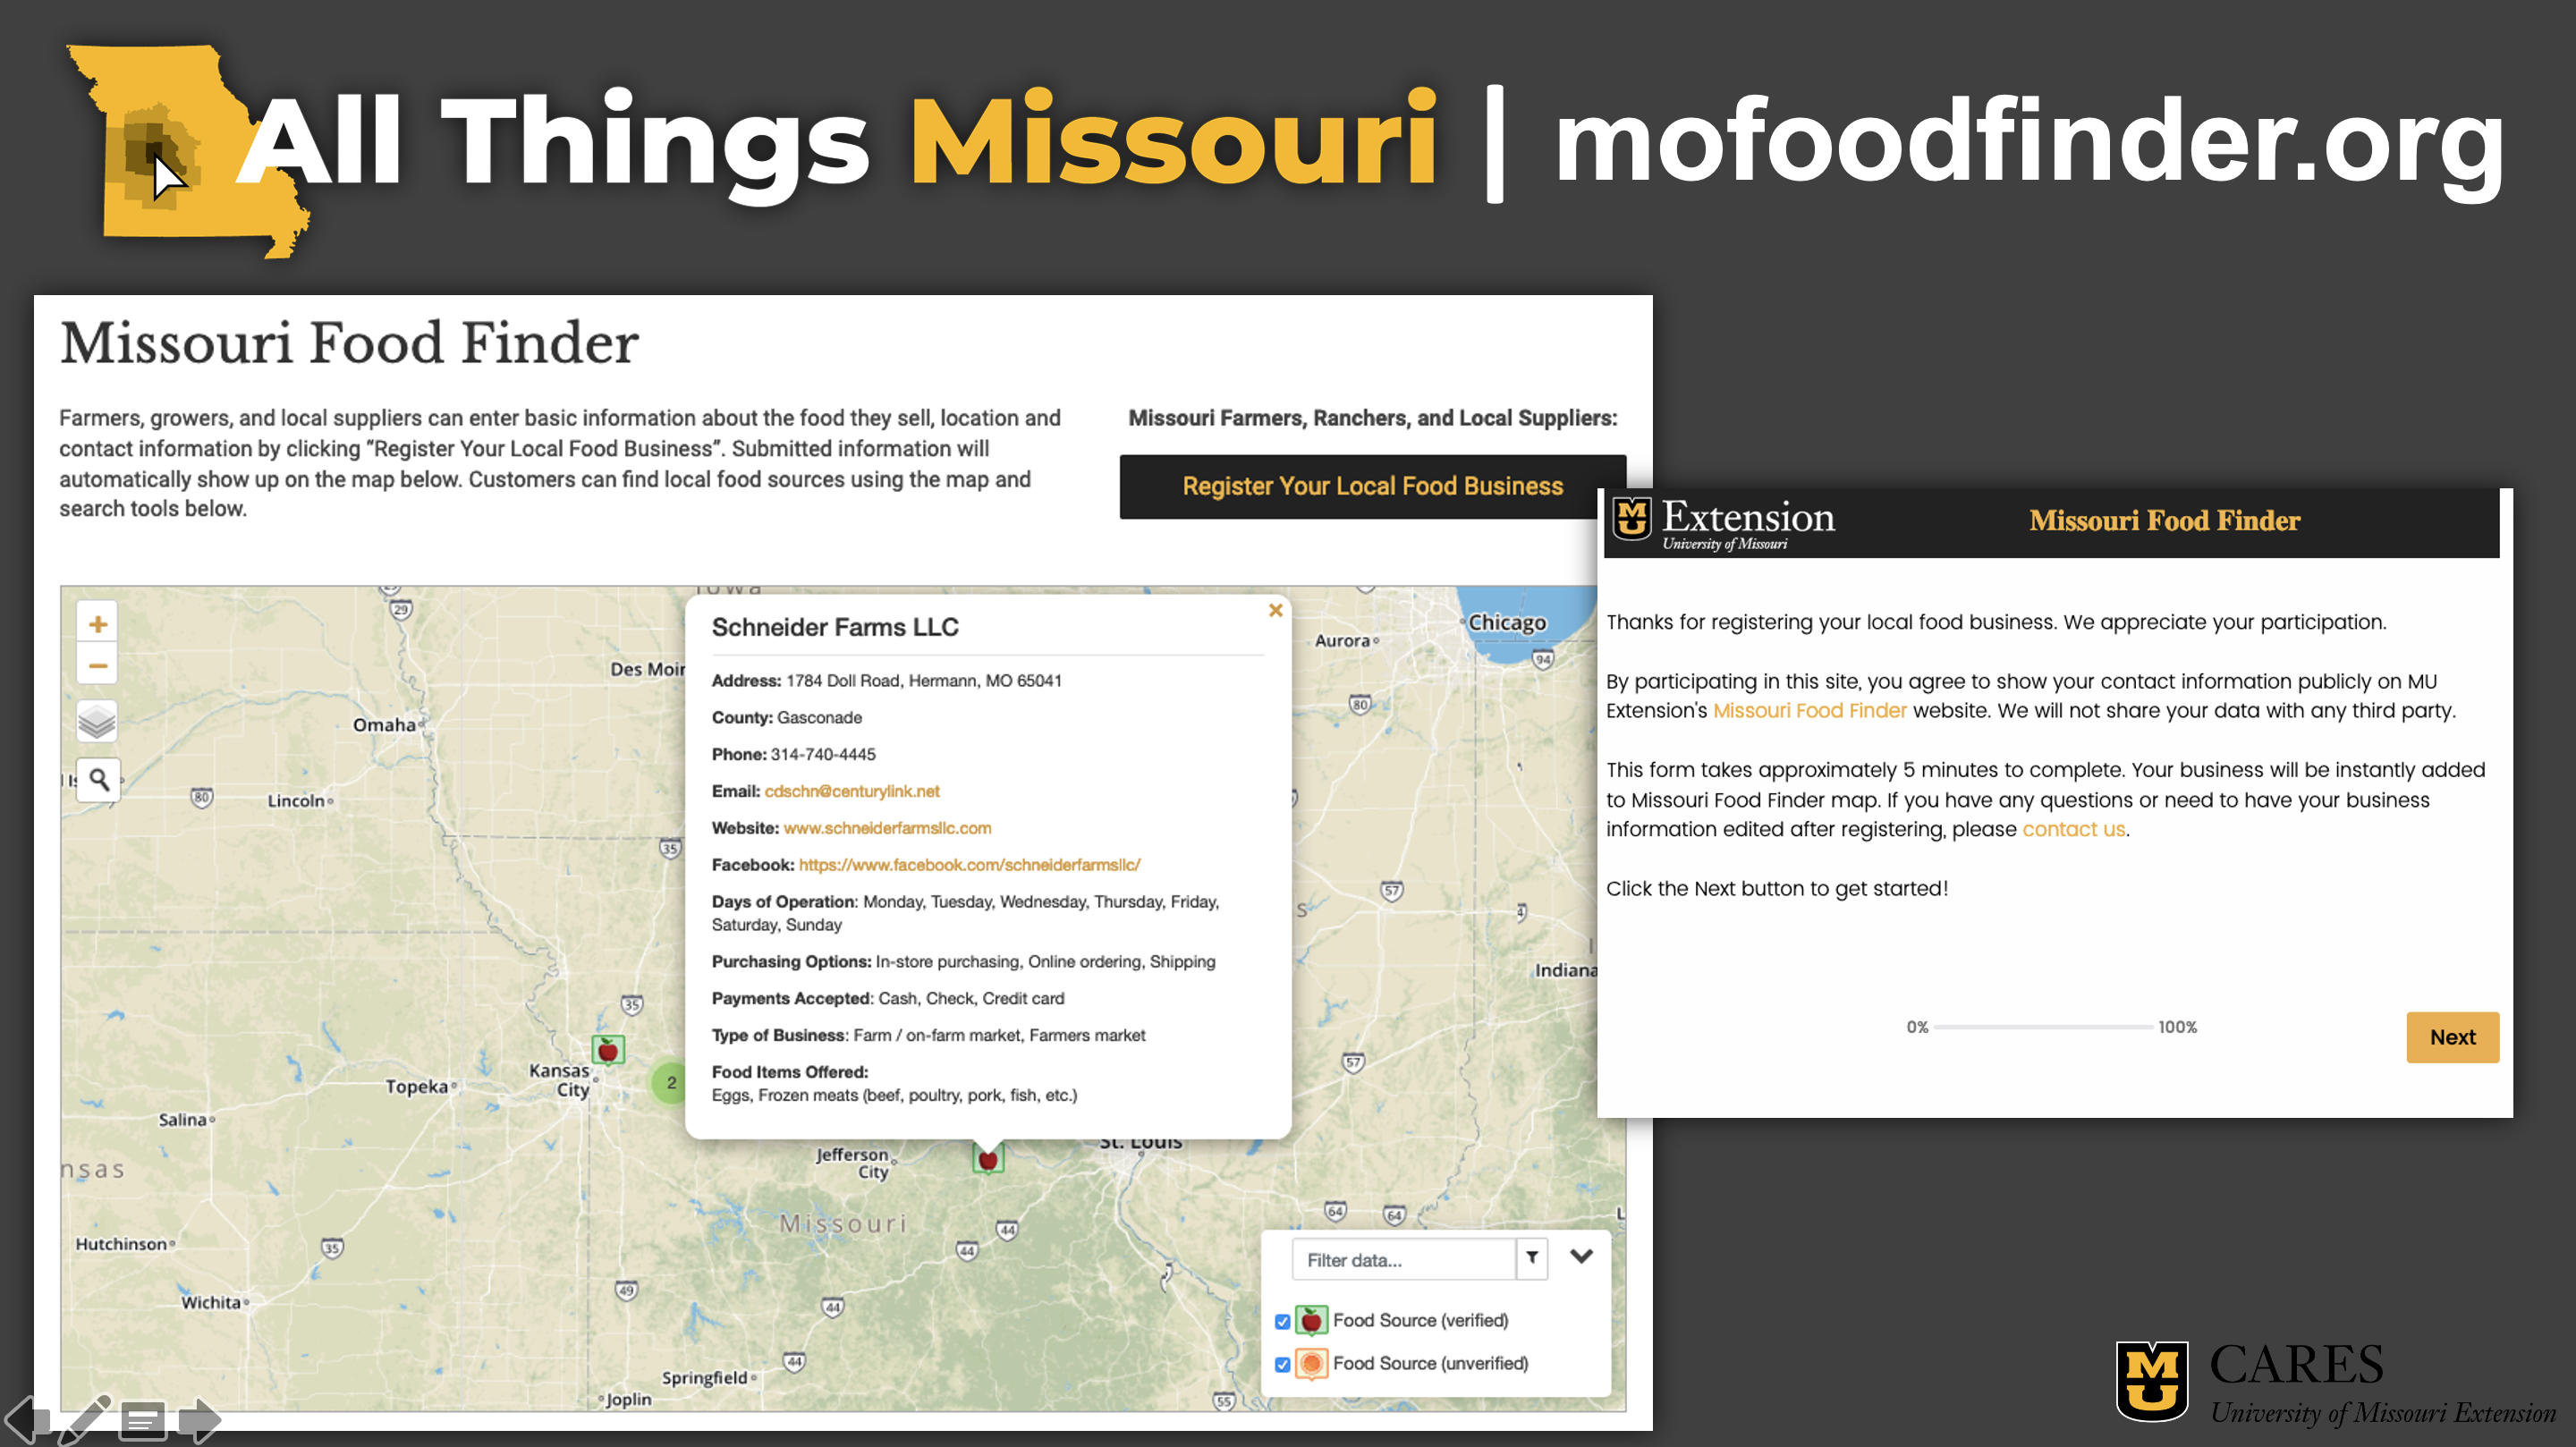 Missouri Food Finder- All Things Missouri